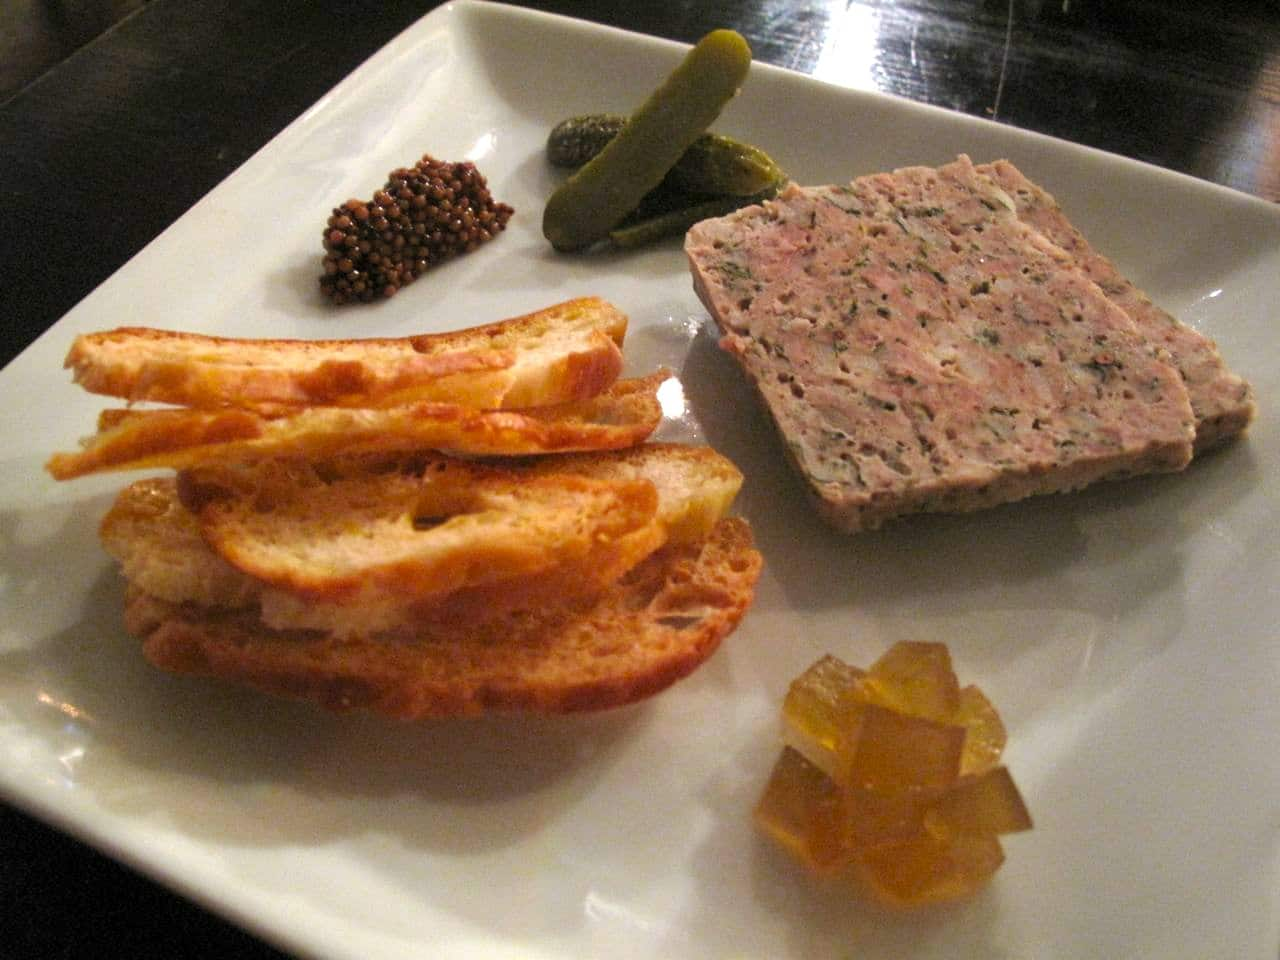 Pork Terrine with pickled watermelon rind at Beast Restaurant Toronto.